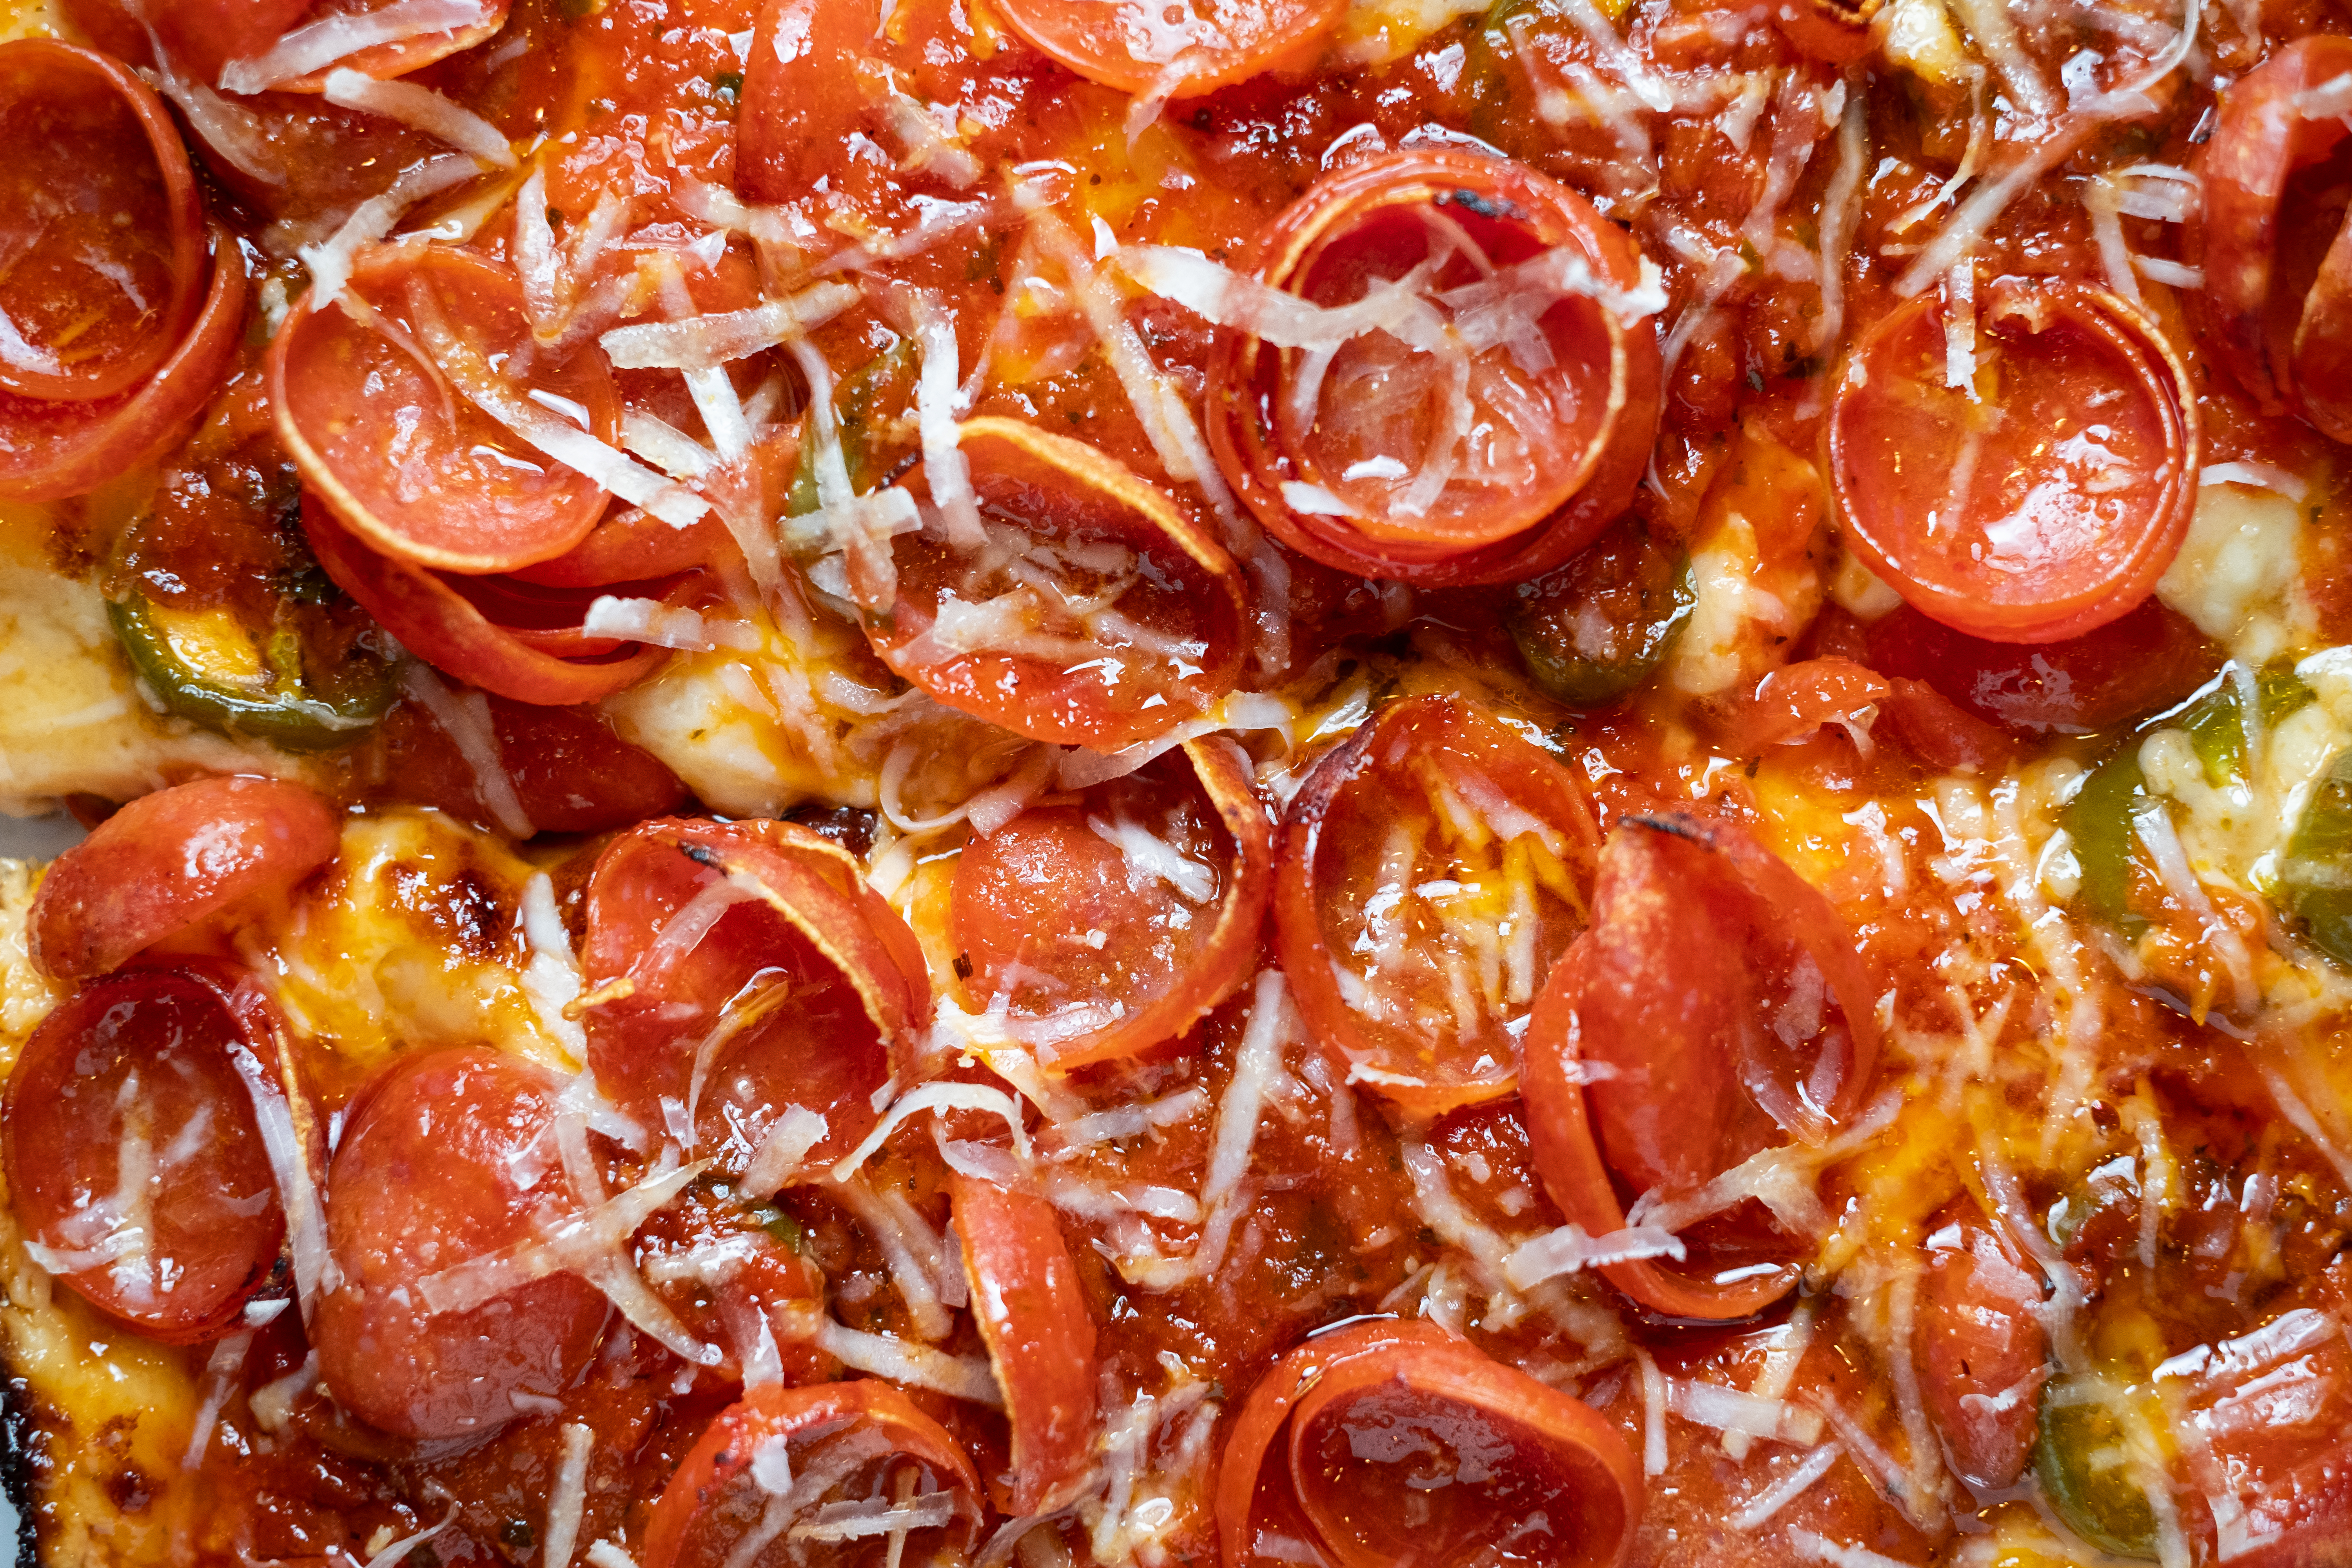 Extreme close-up of curly pepperoni pizza from Wrecktangle.